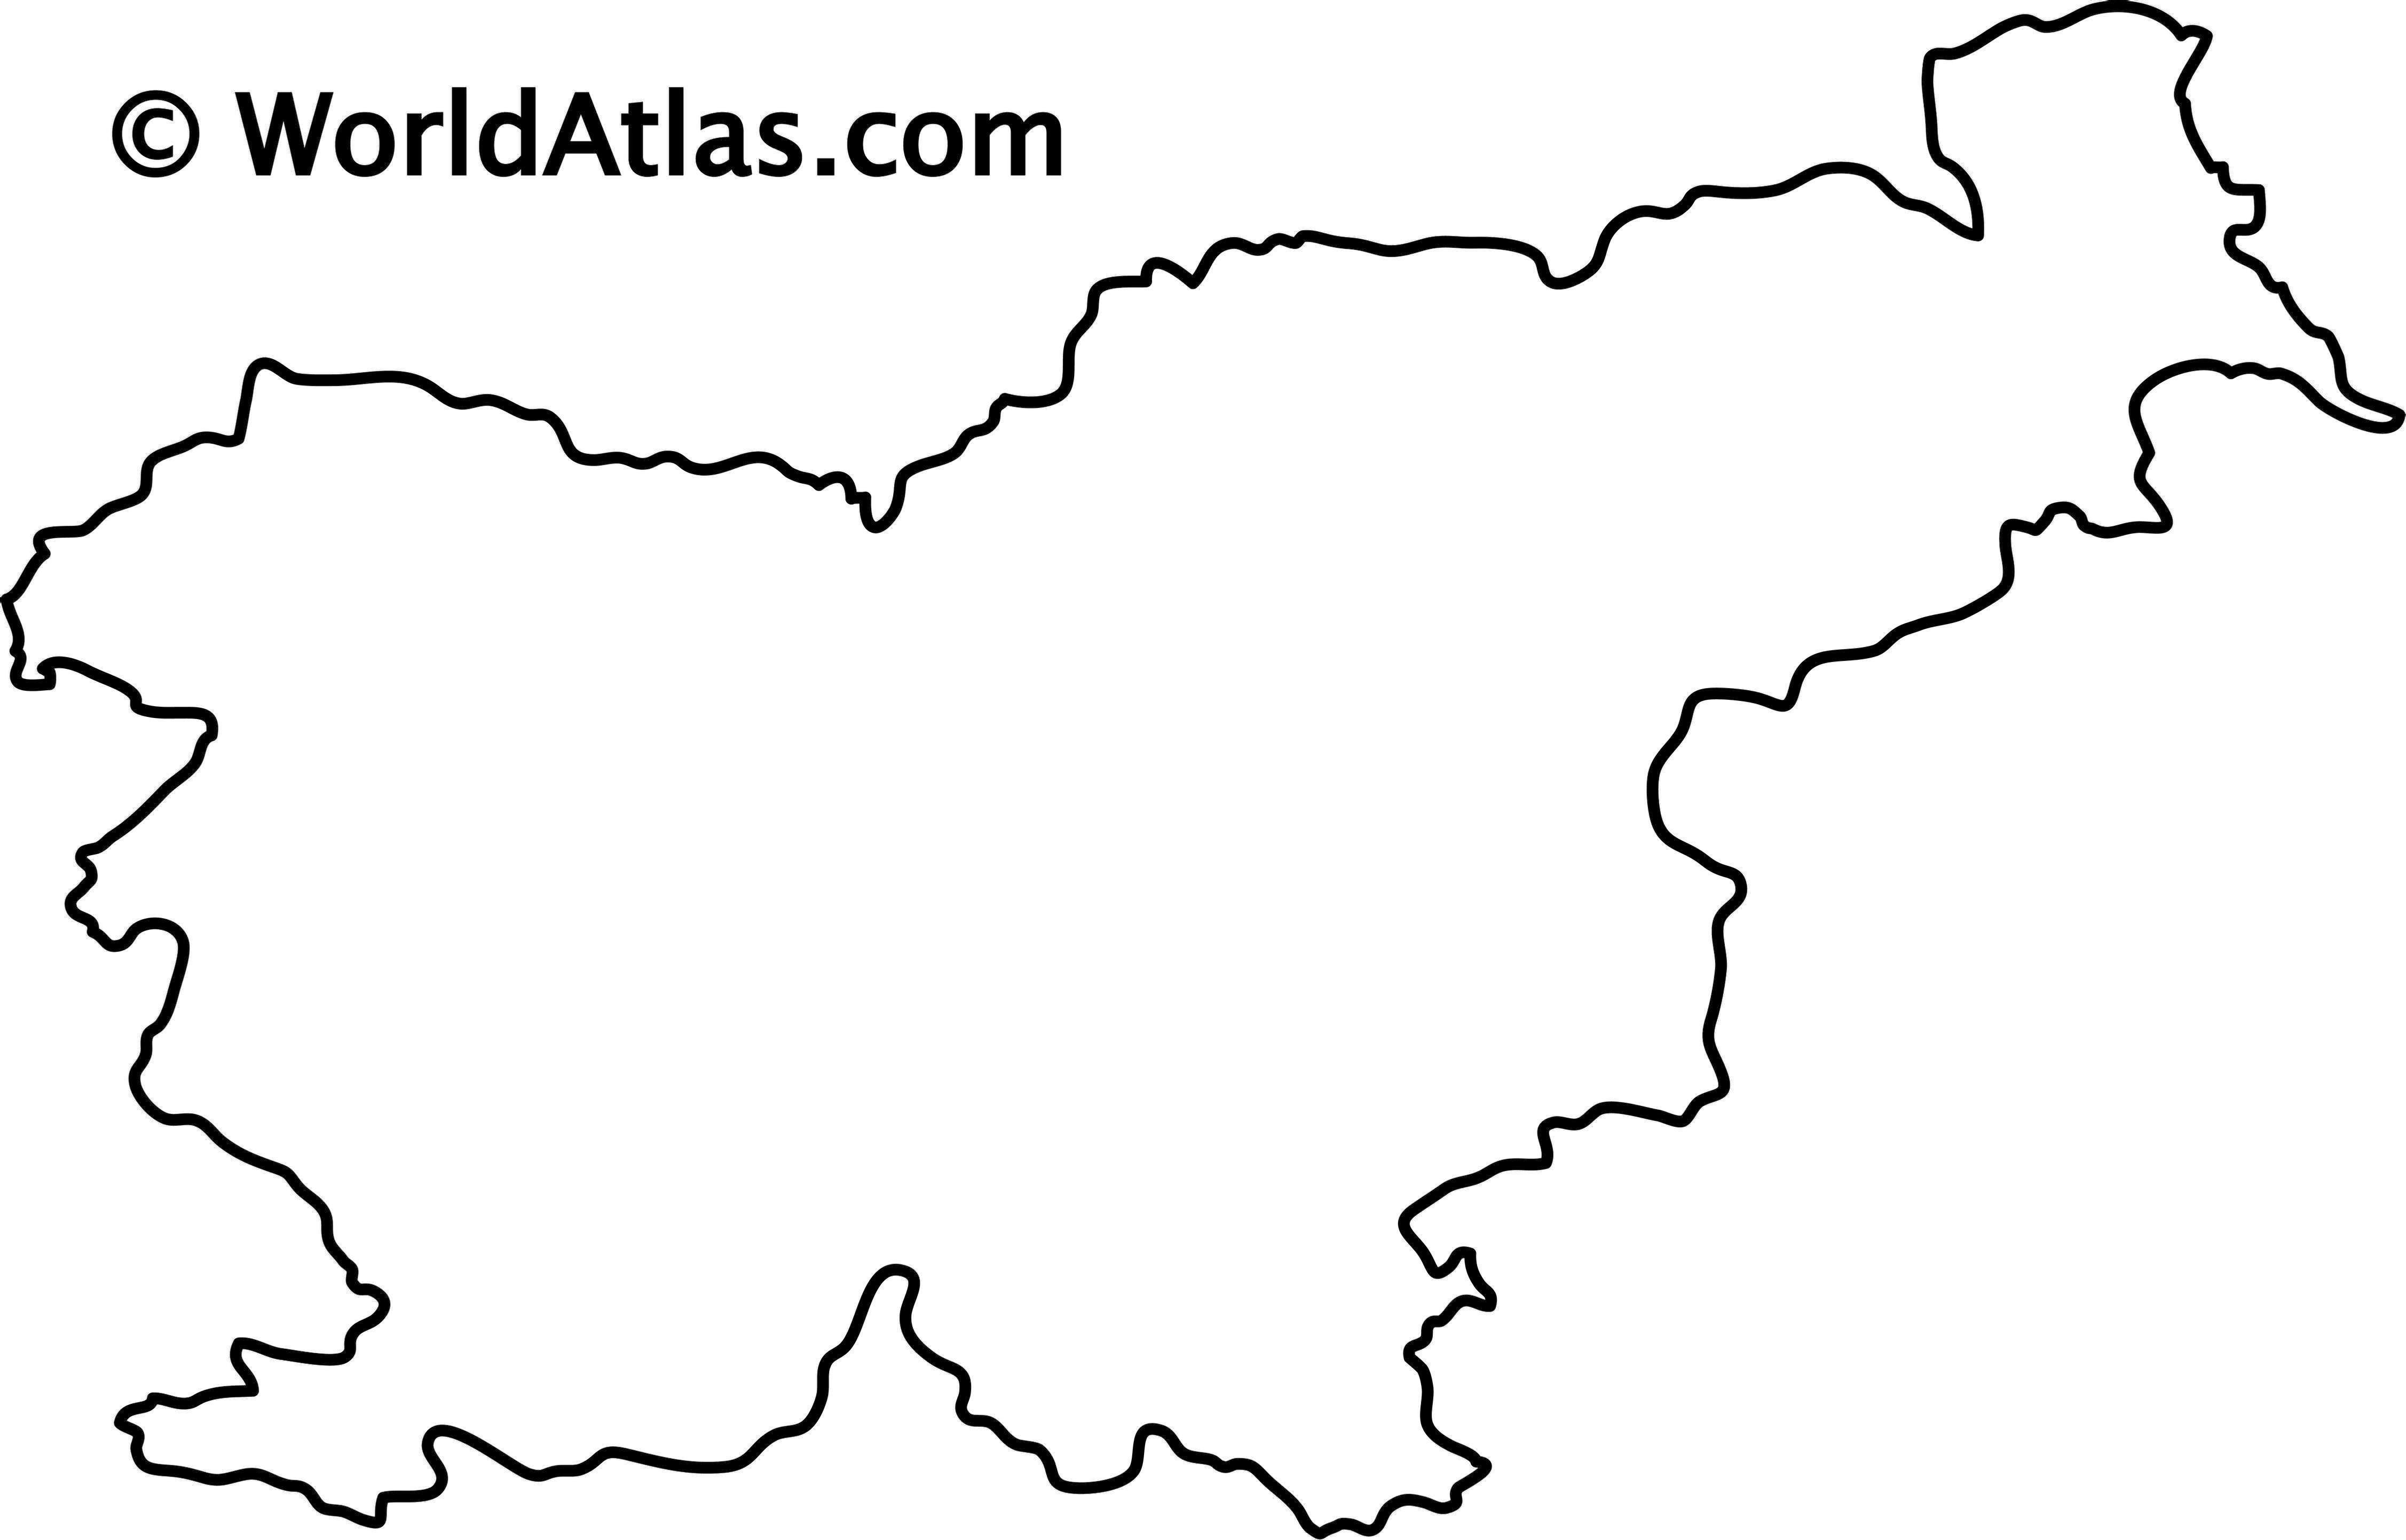 Blank Outline Map of Slovenia